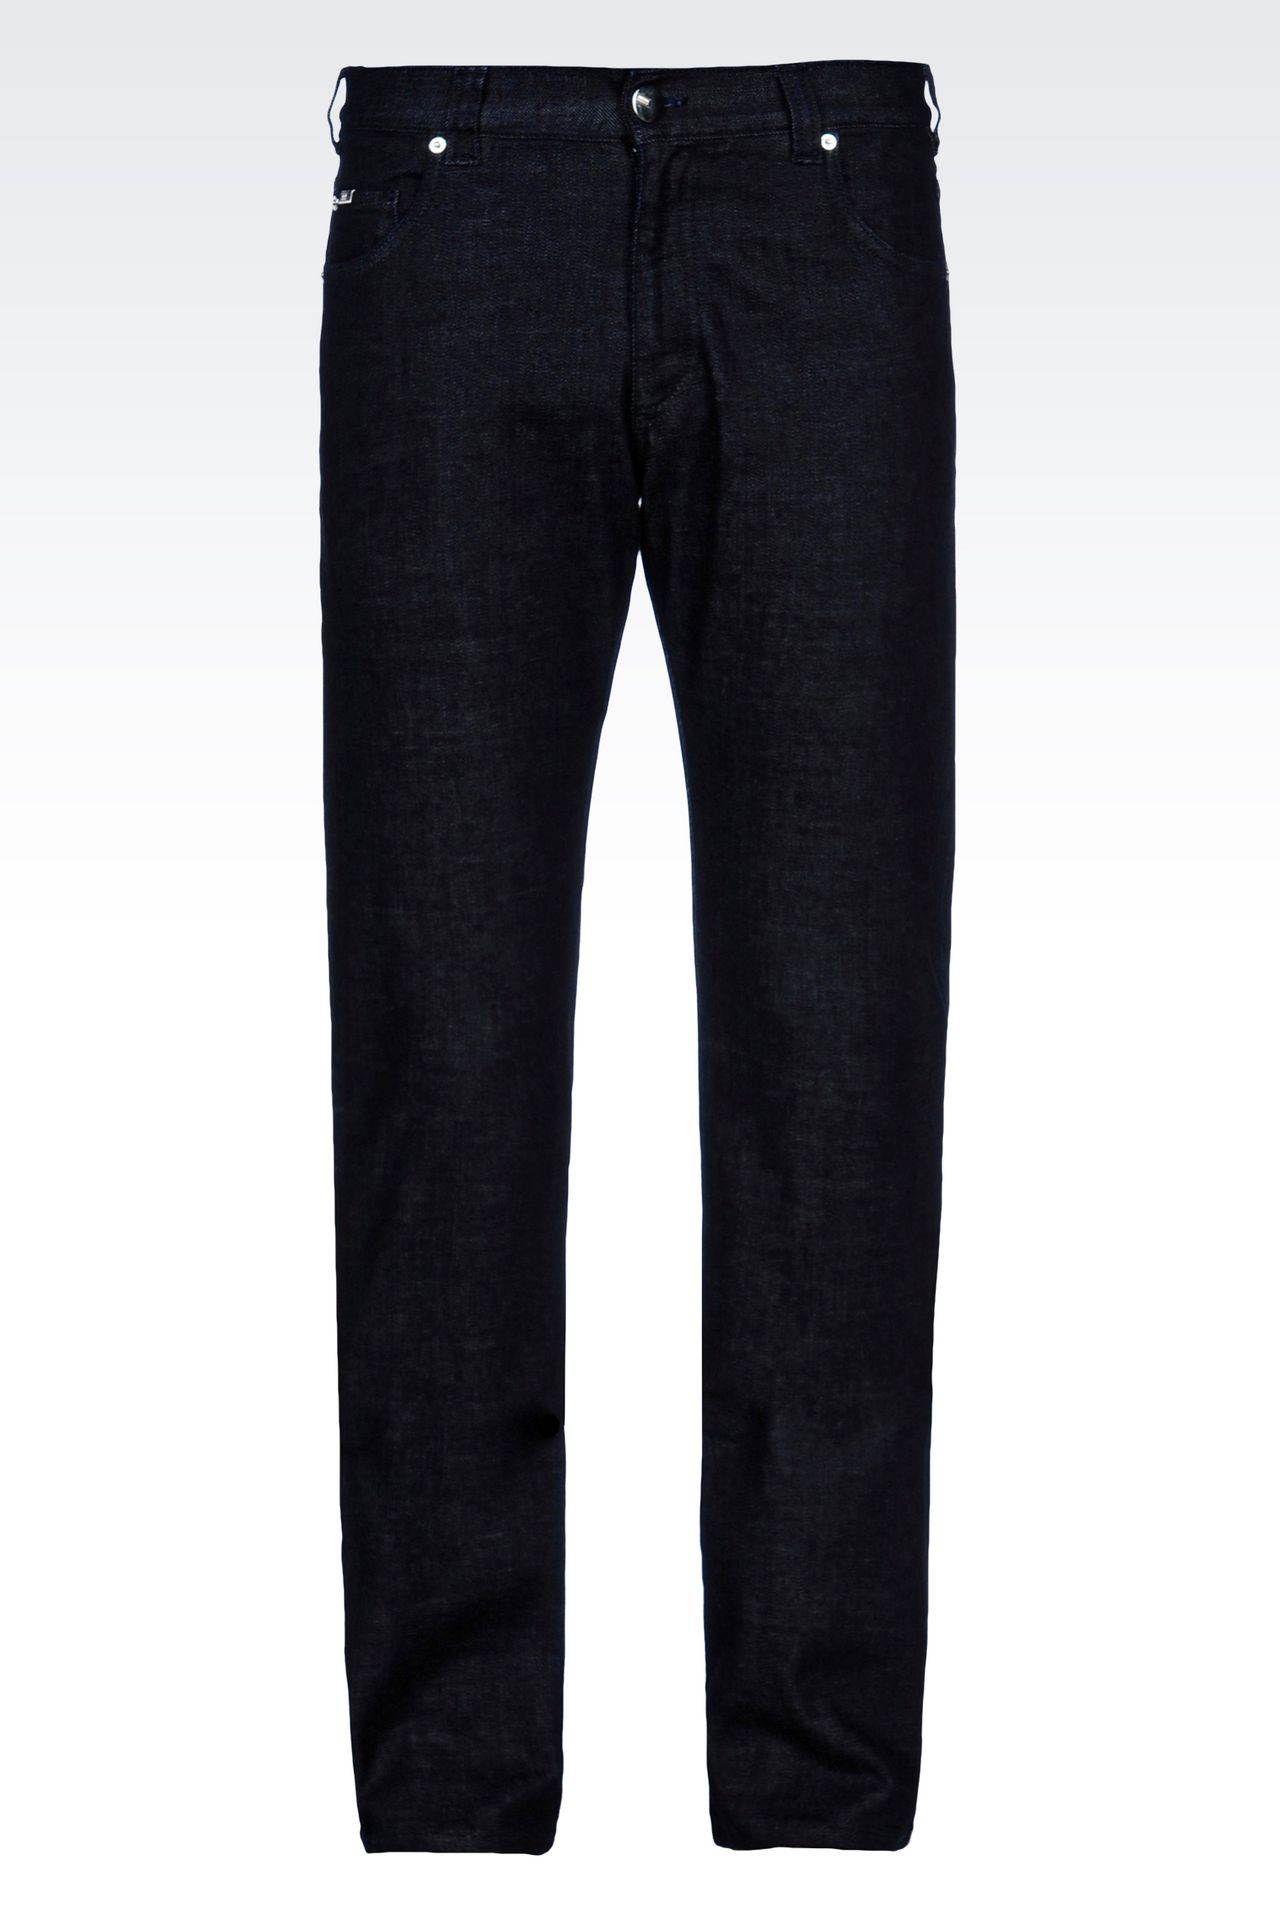 Armani Collezioni Men SLIM FIT STRETCH COTTON JEANS - Armani.com